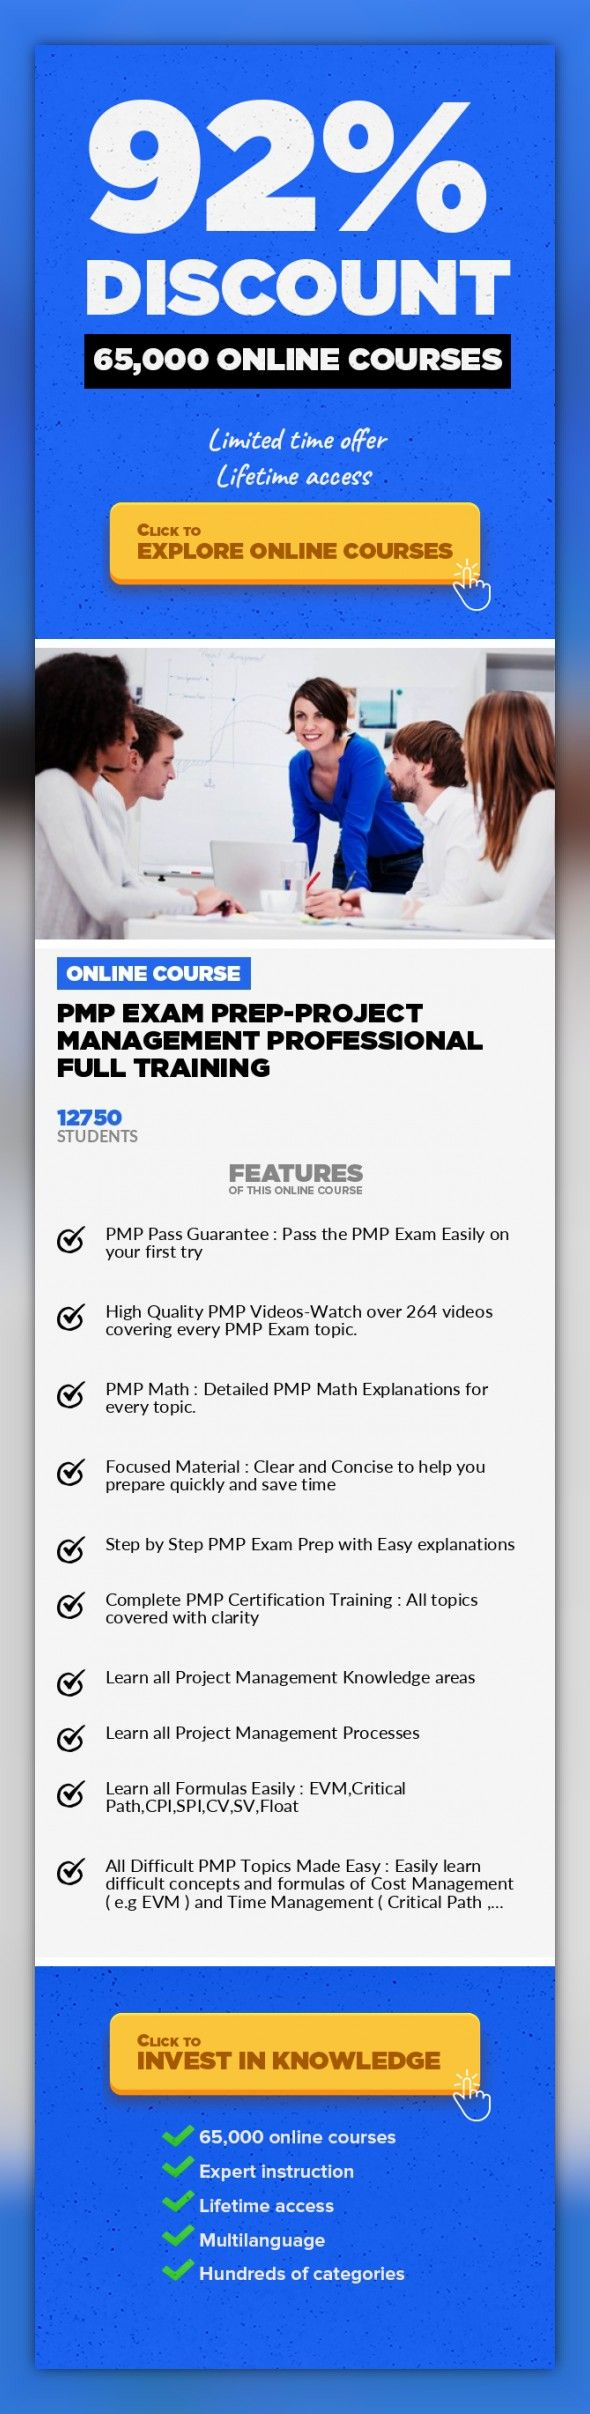 Pmp Online Certification Training Gallery Creative Certificate